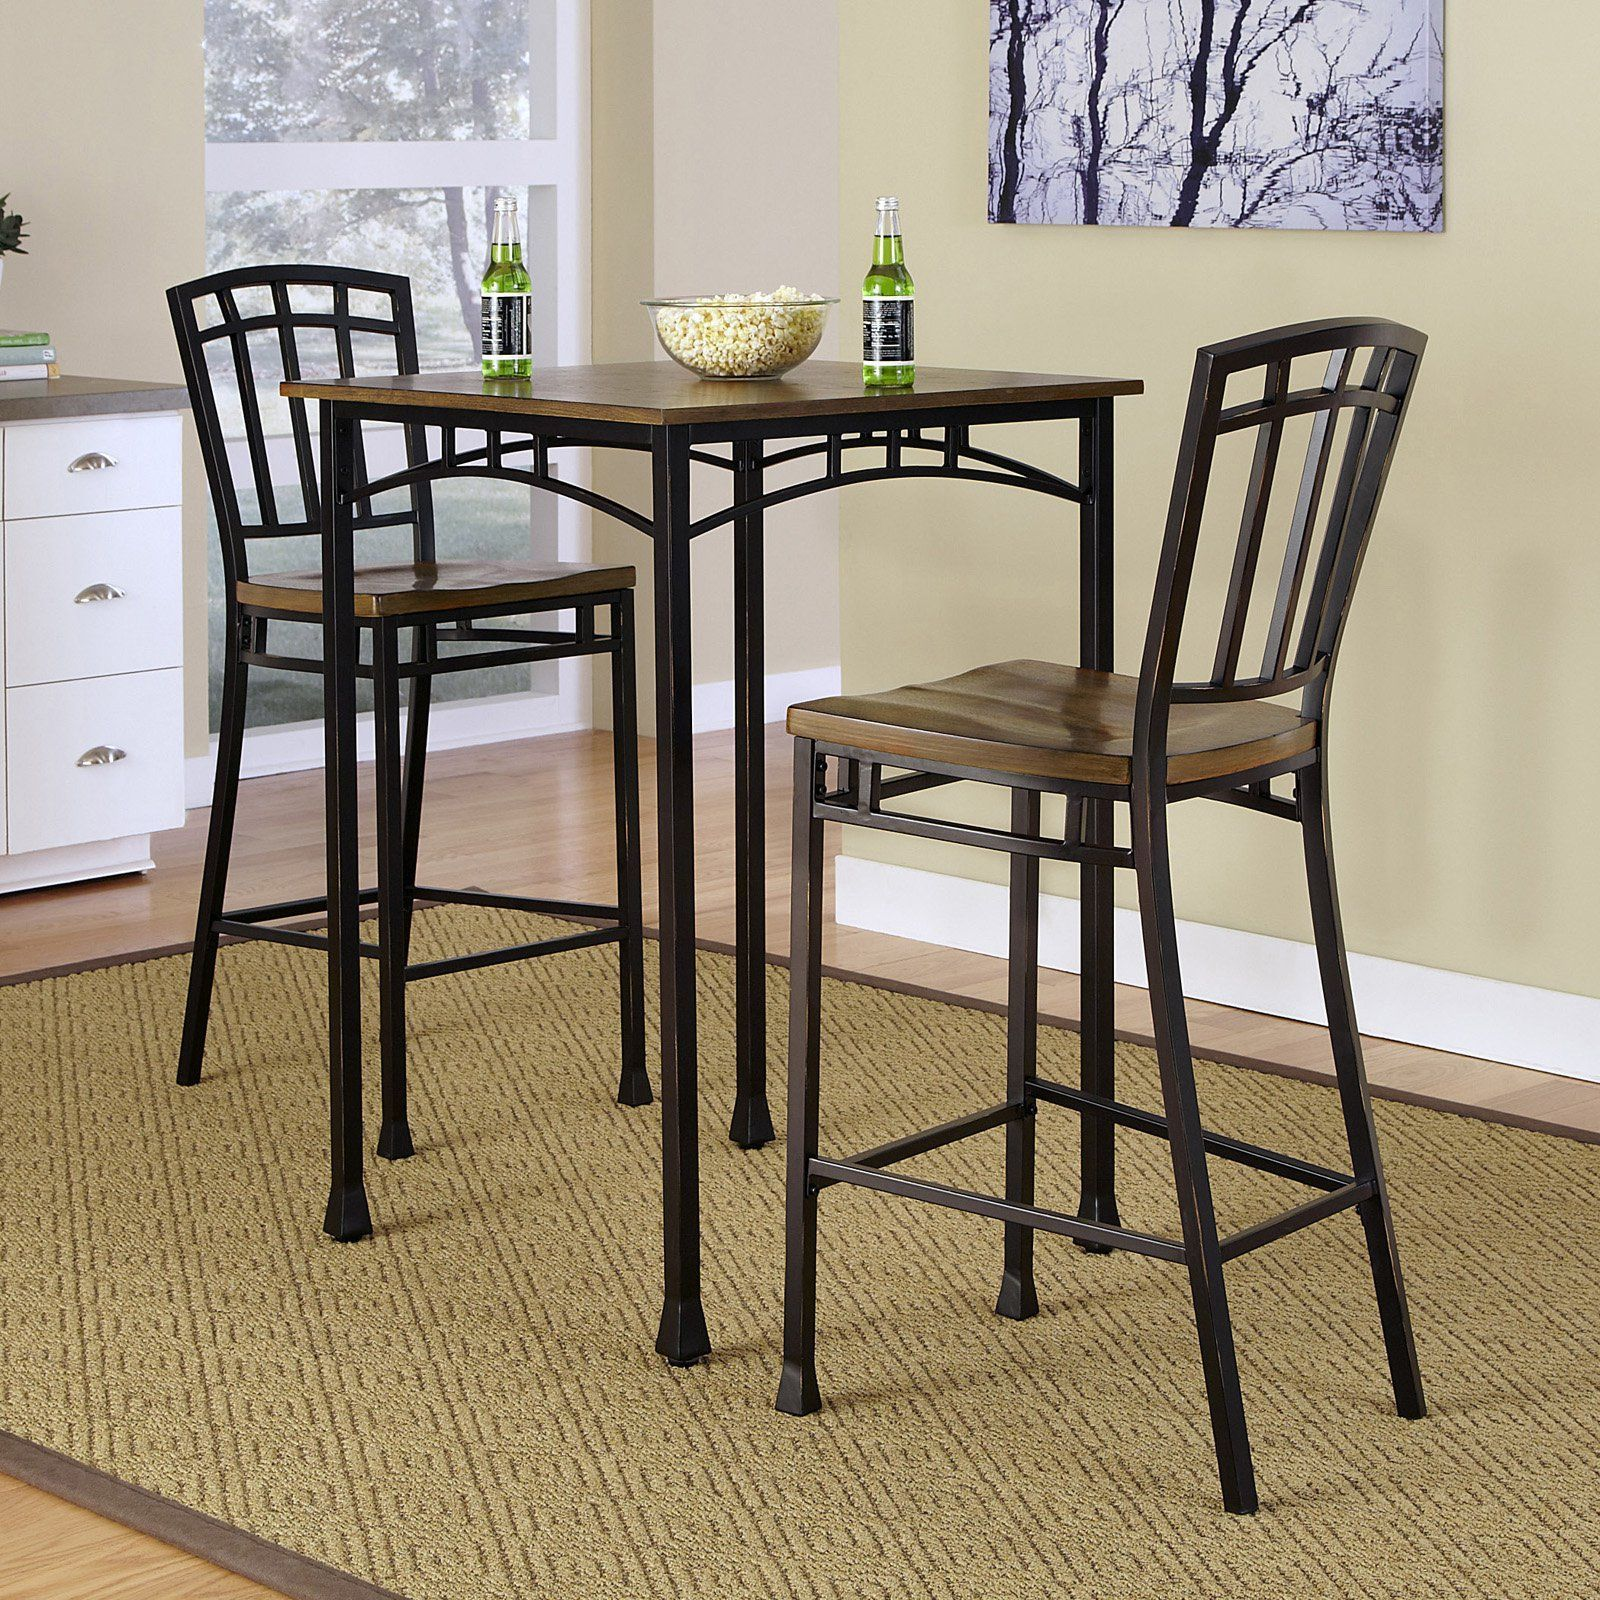 Home Styles Modern Craftsman 3 Piece Pub Set Elevate The Look Of Your Bar